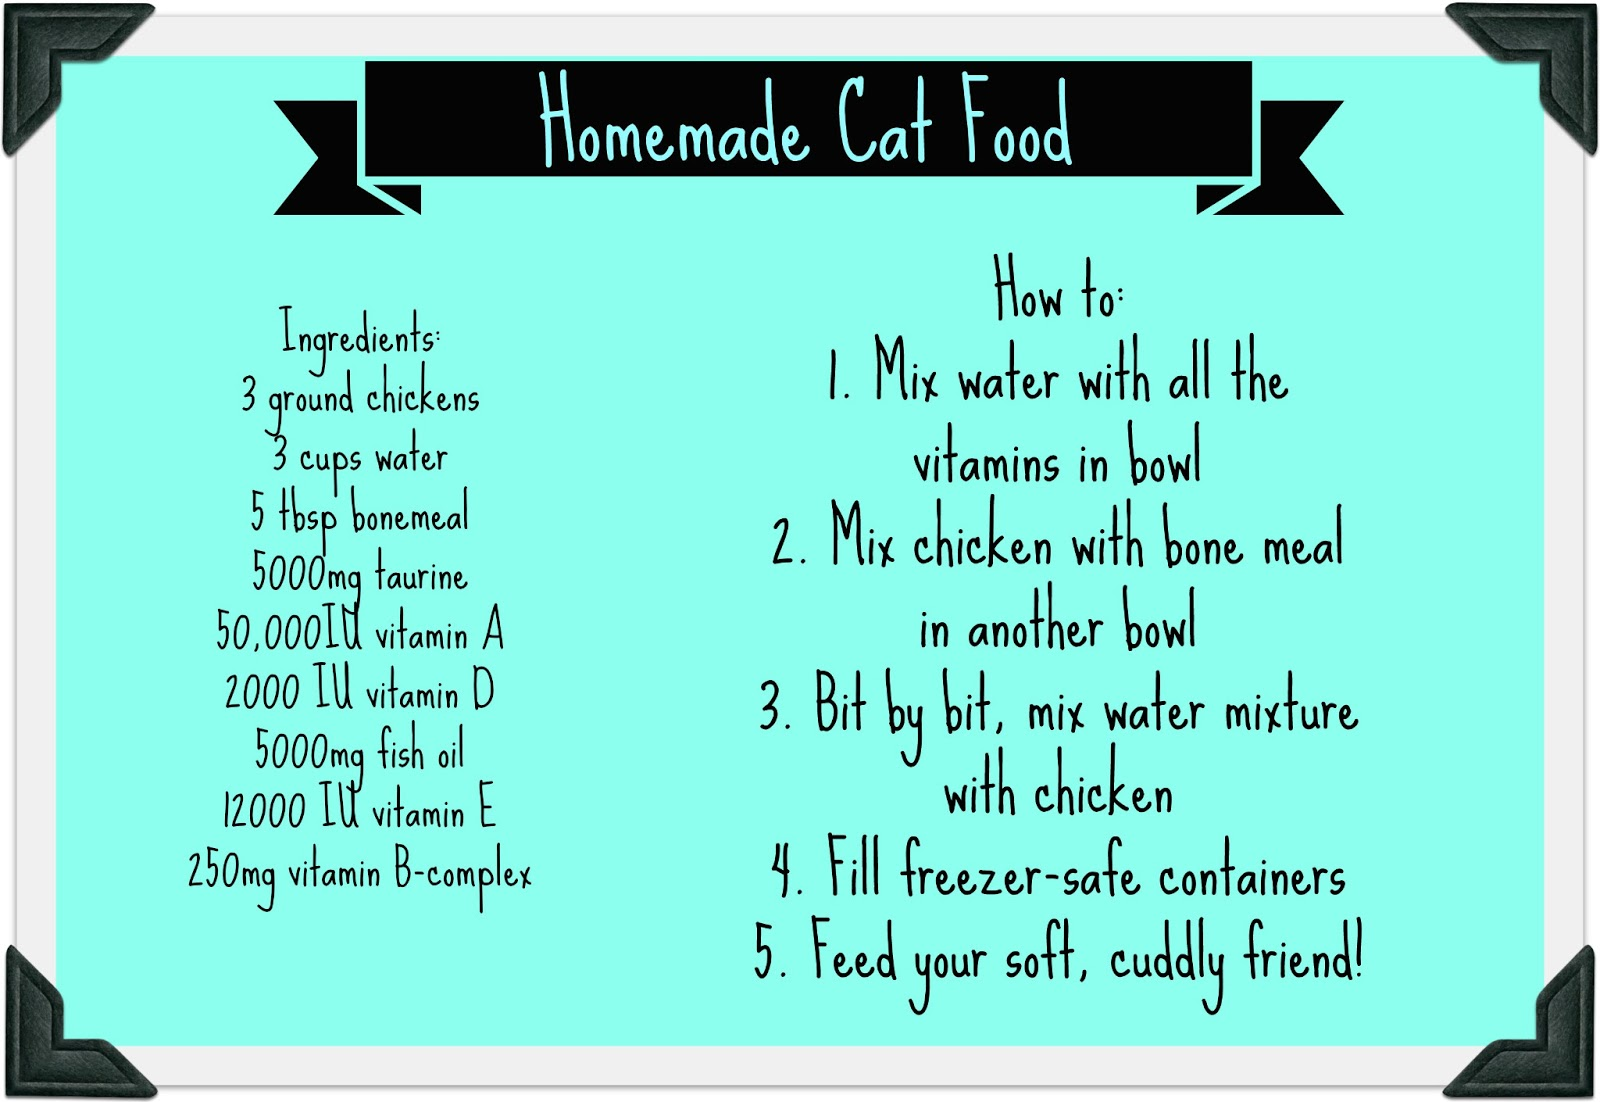 Homemade cat food recipes with chicken food fast recipes homemade cat food recipes with chicken forumfinder Gallery